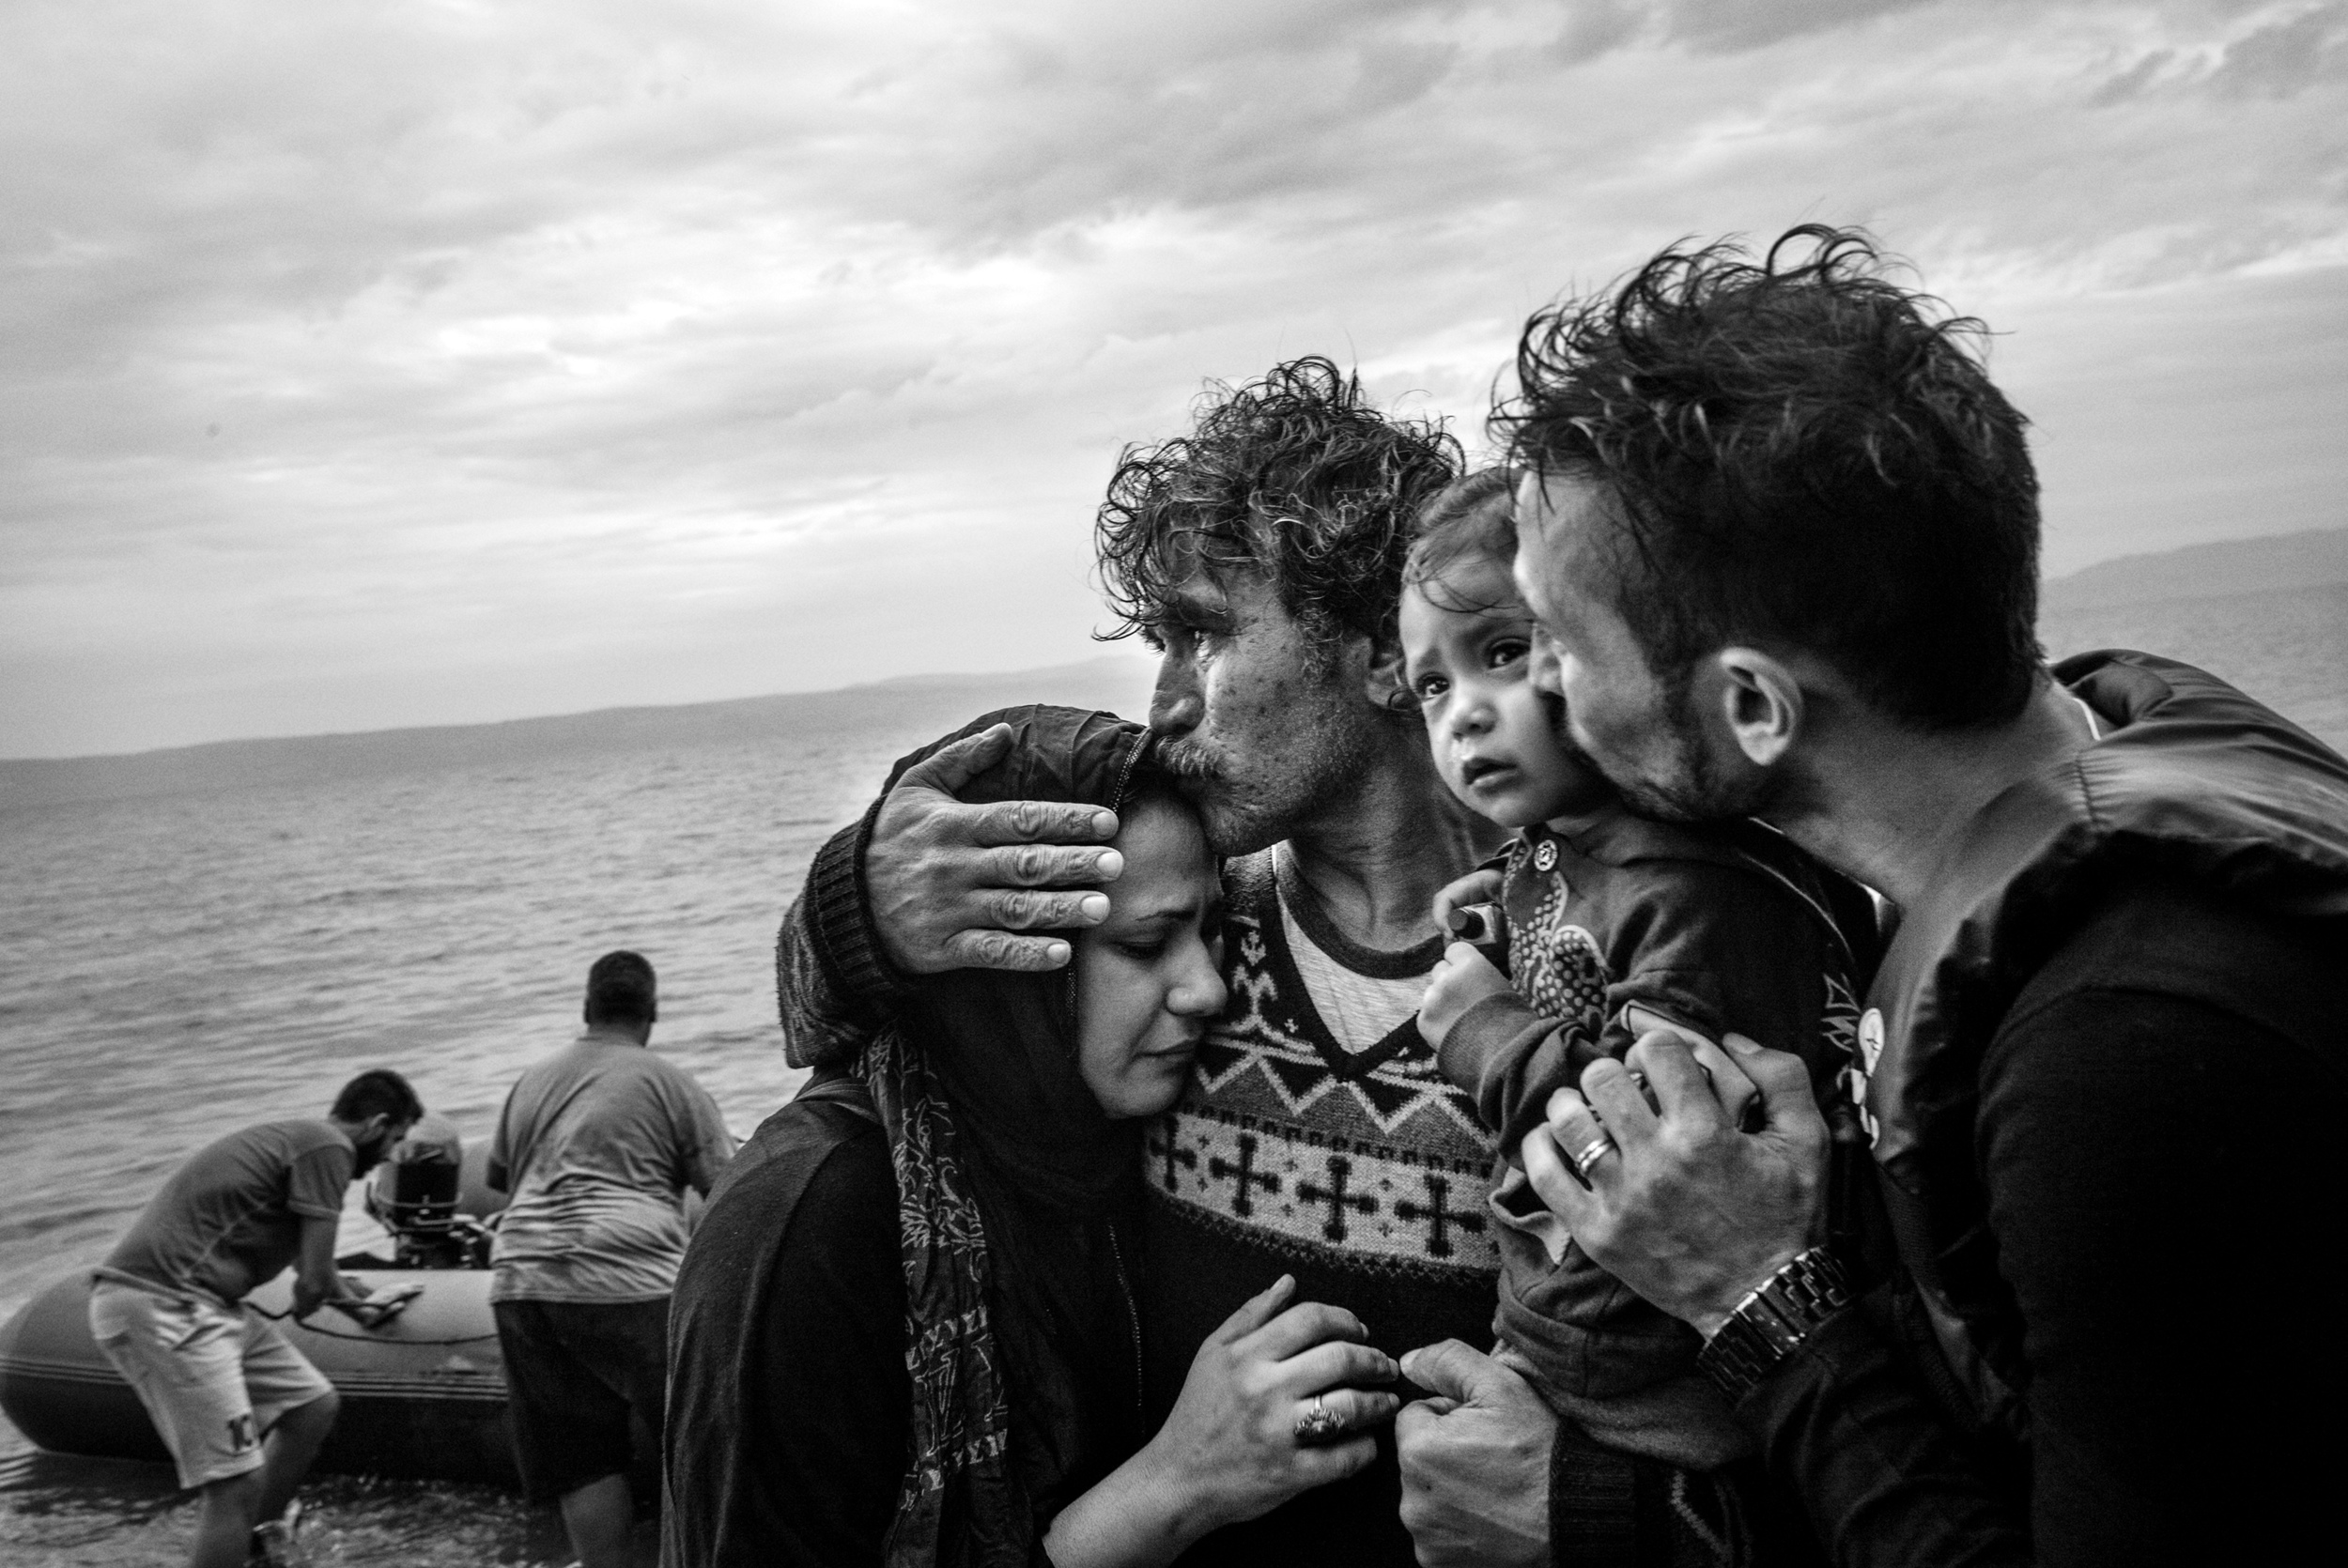 A Syrian family weeps tears of joy after reaching, on a rubber boat from Turkey, the village of Skala Sykaminias  located on the northeastern Greek island of Lesbos, on October 10, 2015. Thousand of refugees, mostly coming from Syria, Iraq and Afghanistan, cross everyday the Aegean sea from Turkey to reach Europe: a relatively short but extremely perilous journey. According to the UN Refugee Agency, more than 850 000 arrivals by sea were registered in Greece in 2015.